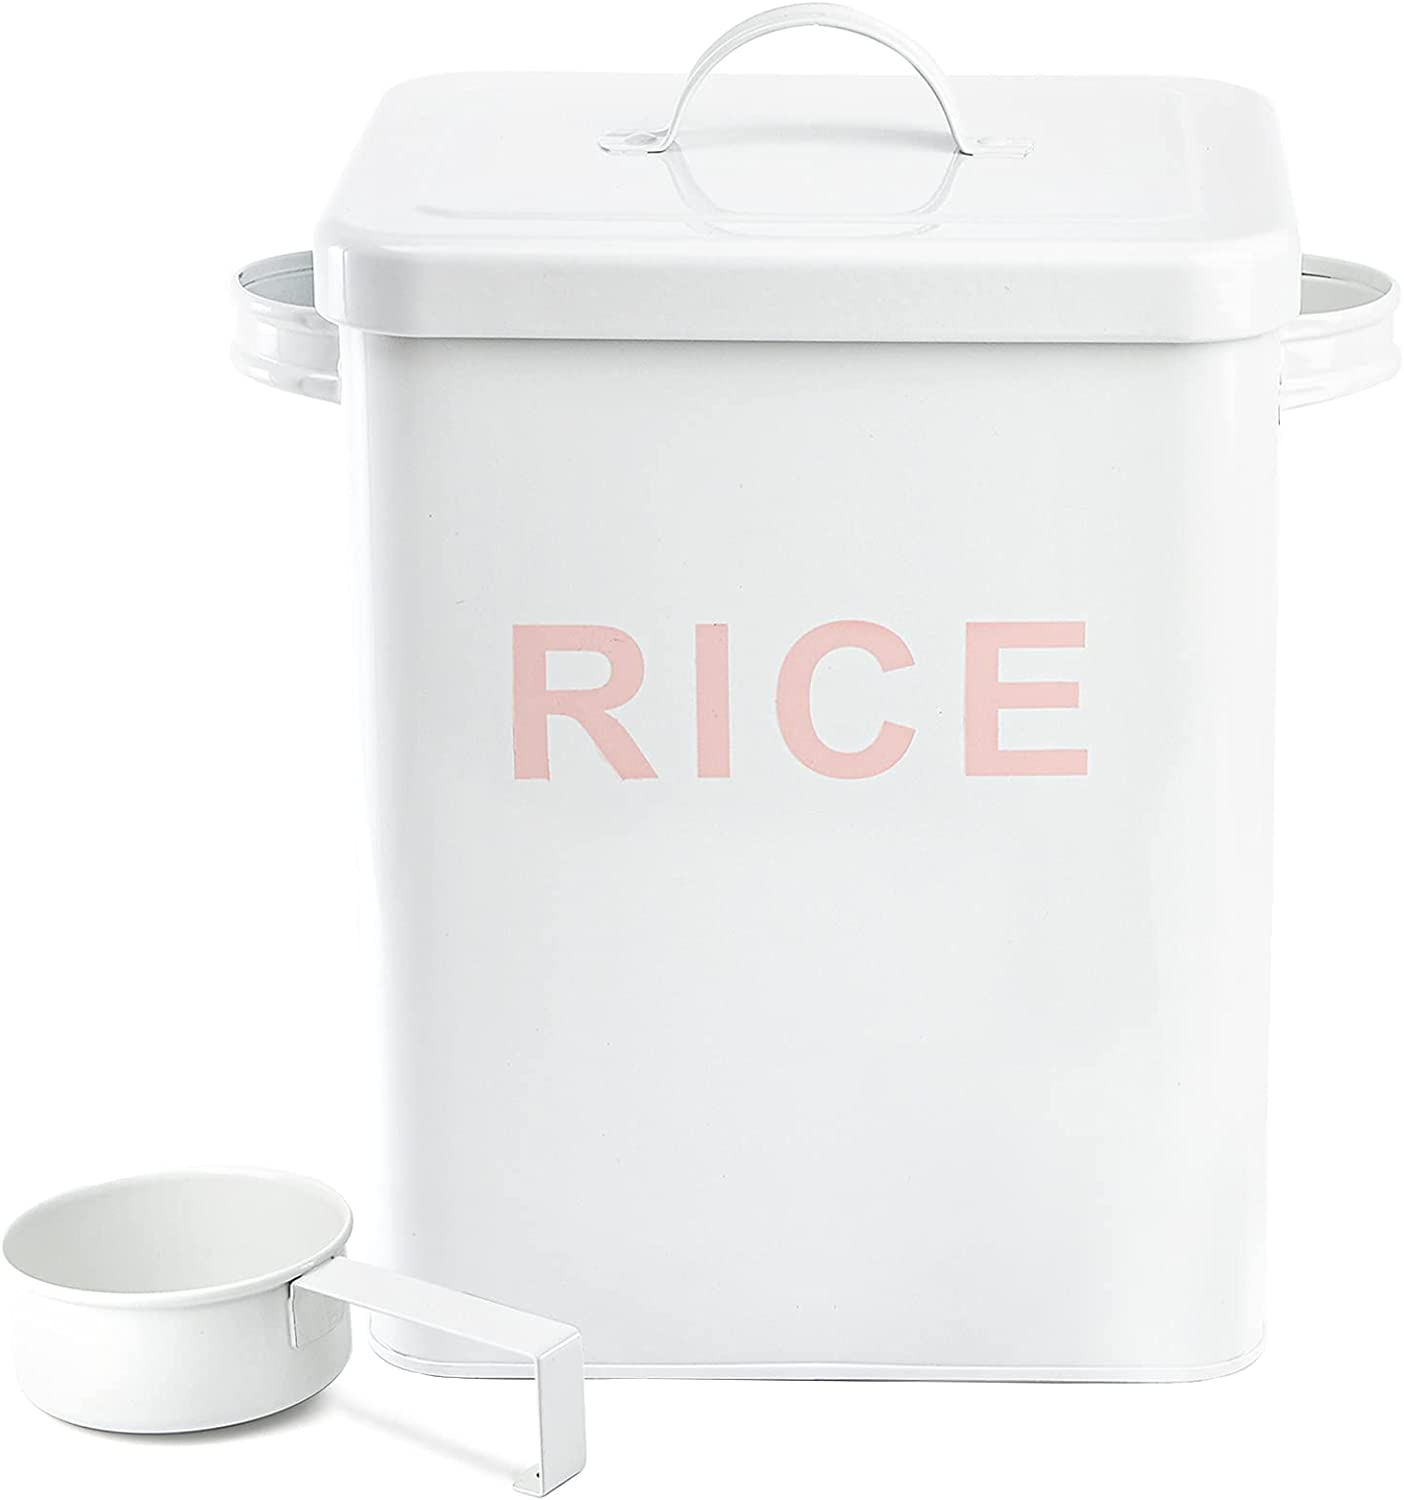 YOUEON Metal Rice Container Flour Storage Tin with Lid and Measuring Scoop, Square Food Storage Canister Kitchen Sundries Bucket for Cereal, Beans, Pet Food, White